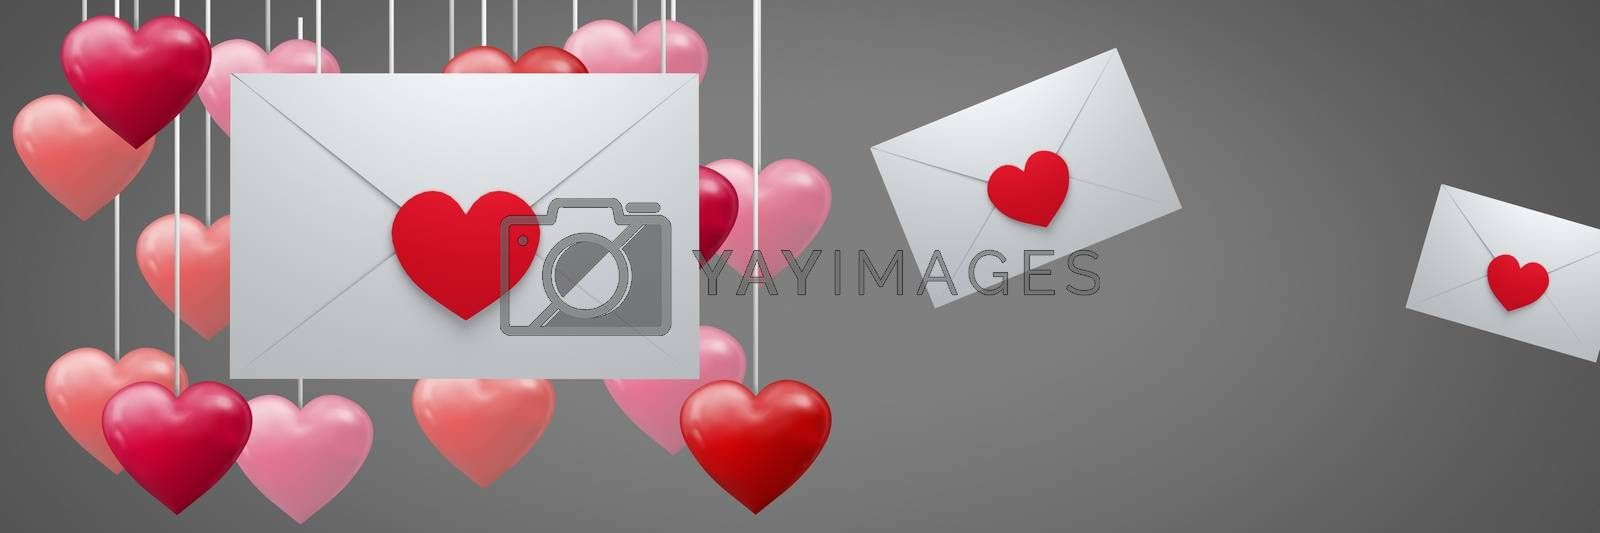 Digital composite of Valentines love letters and hanging hearts